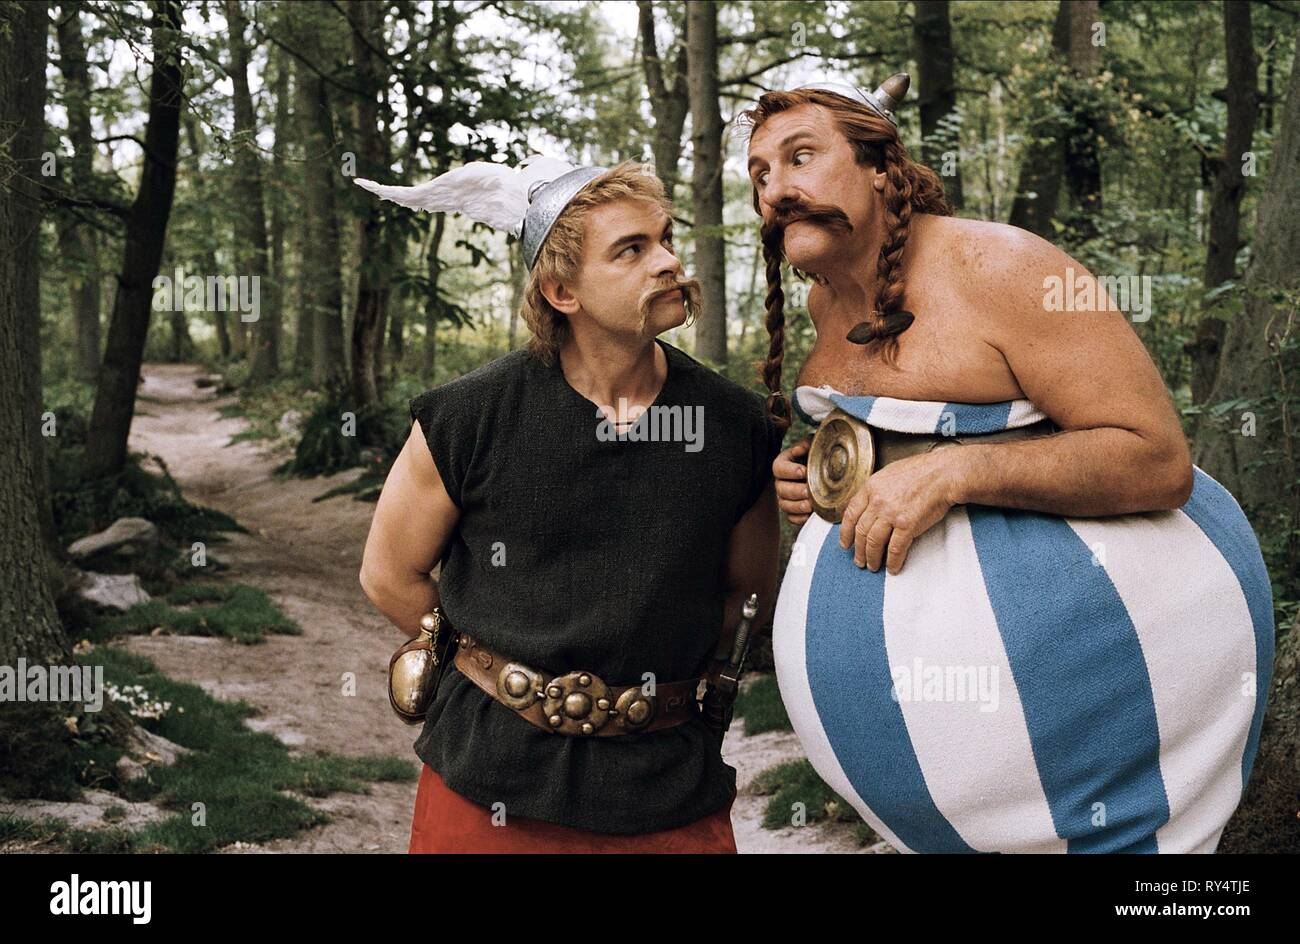 CORNILLAC,DEPARDIEU, ASTERIX AT THE OLYMPIC GAMES, 2008 - Stock Image